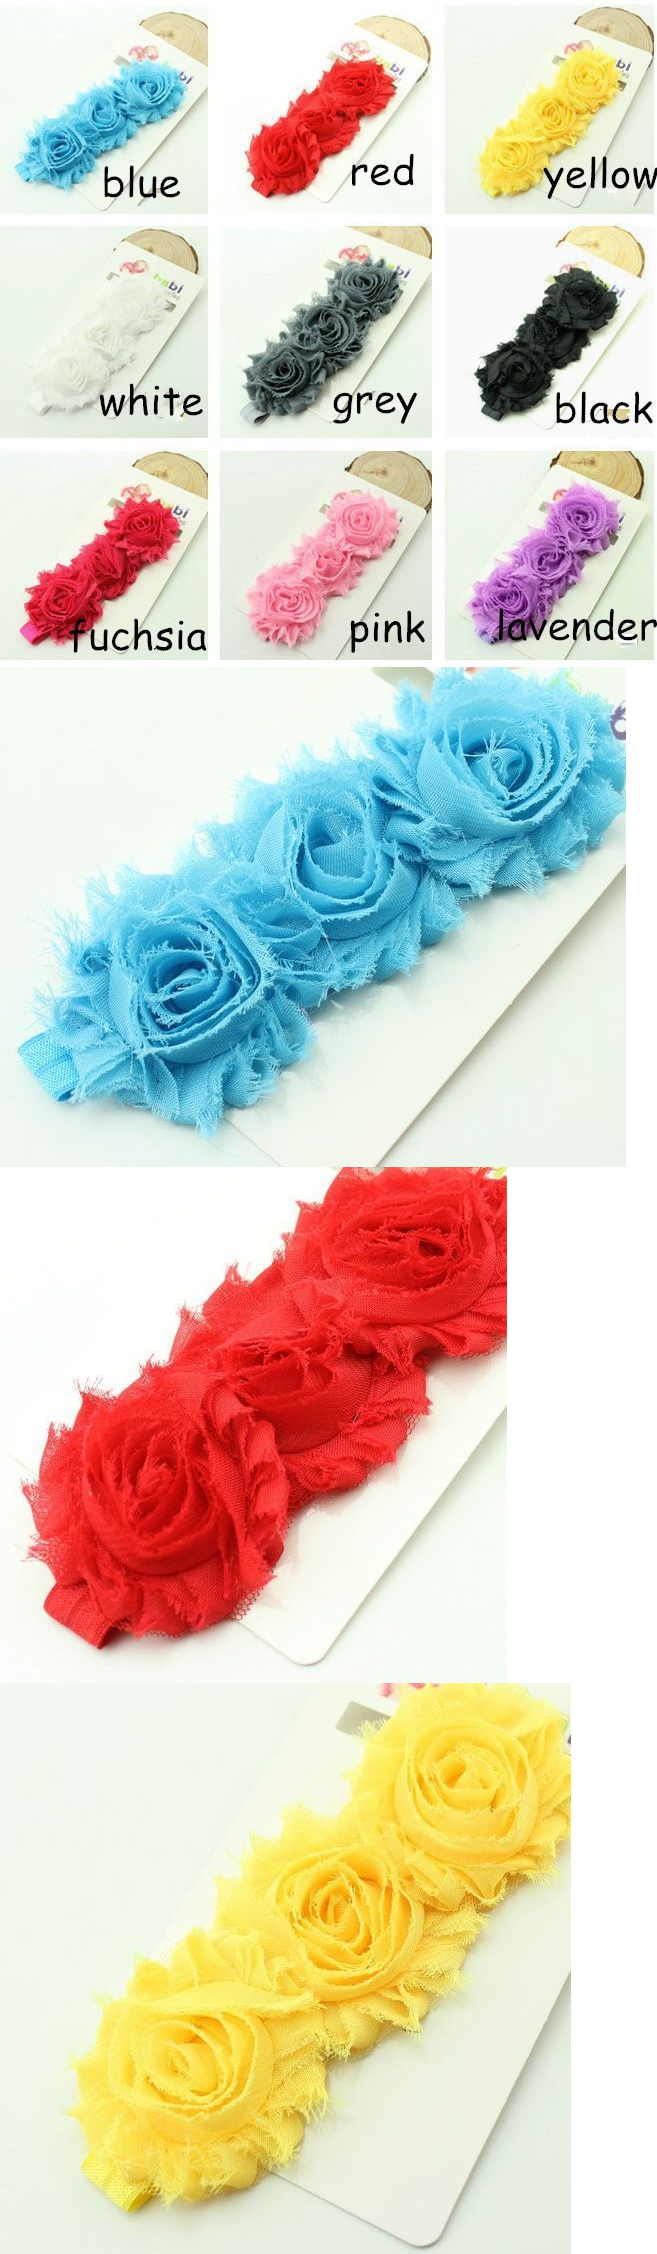 Hair accessories for babies ebay - Hair Accessories 18786 Lot Of Baby Headbands Shabby Chic Flower Multi Color Buy